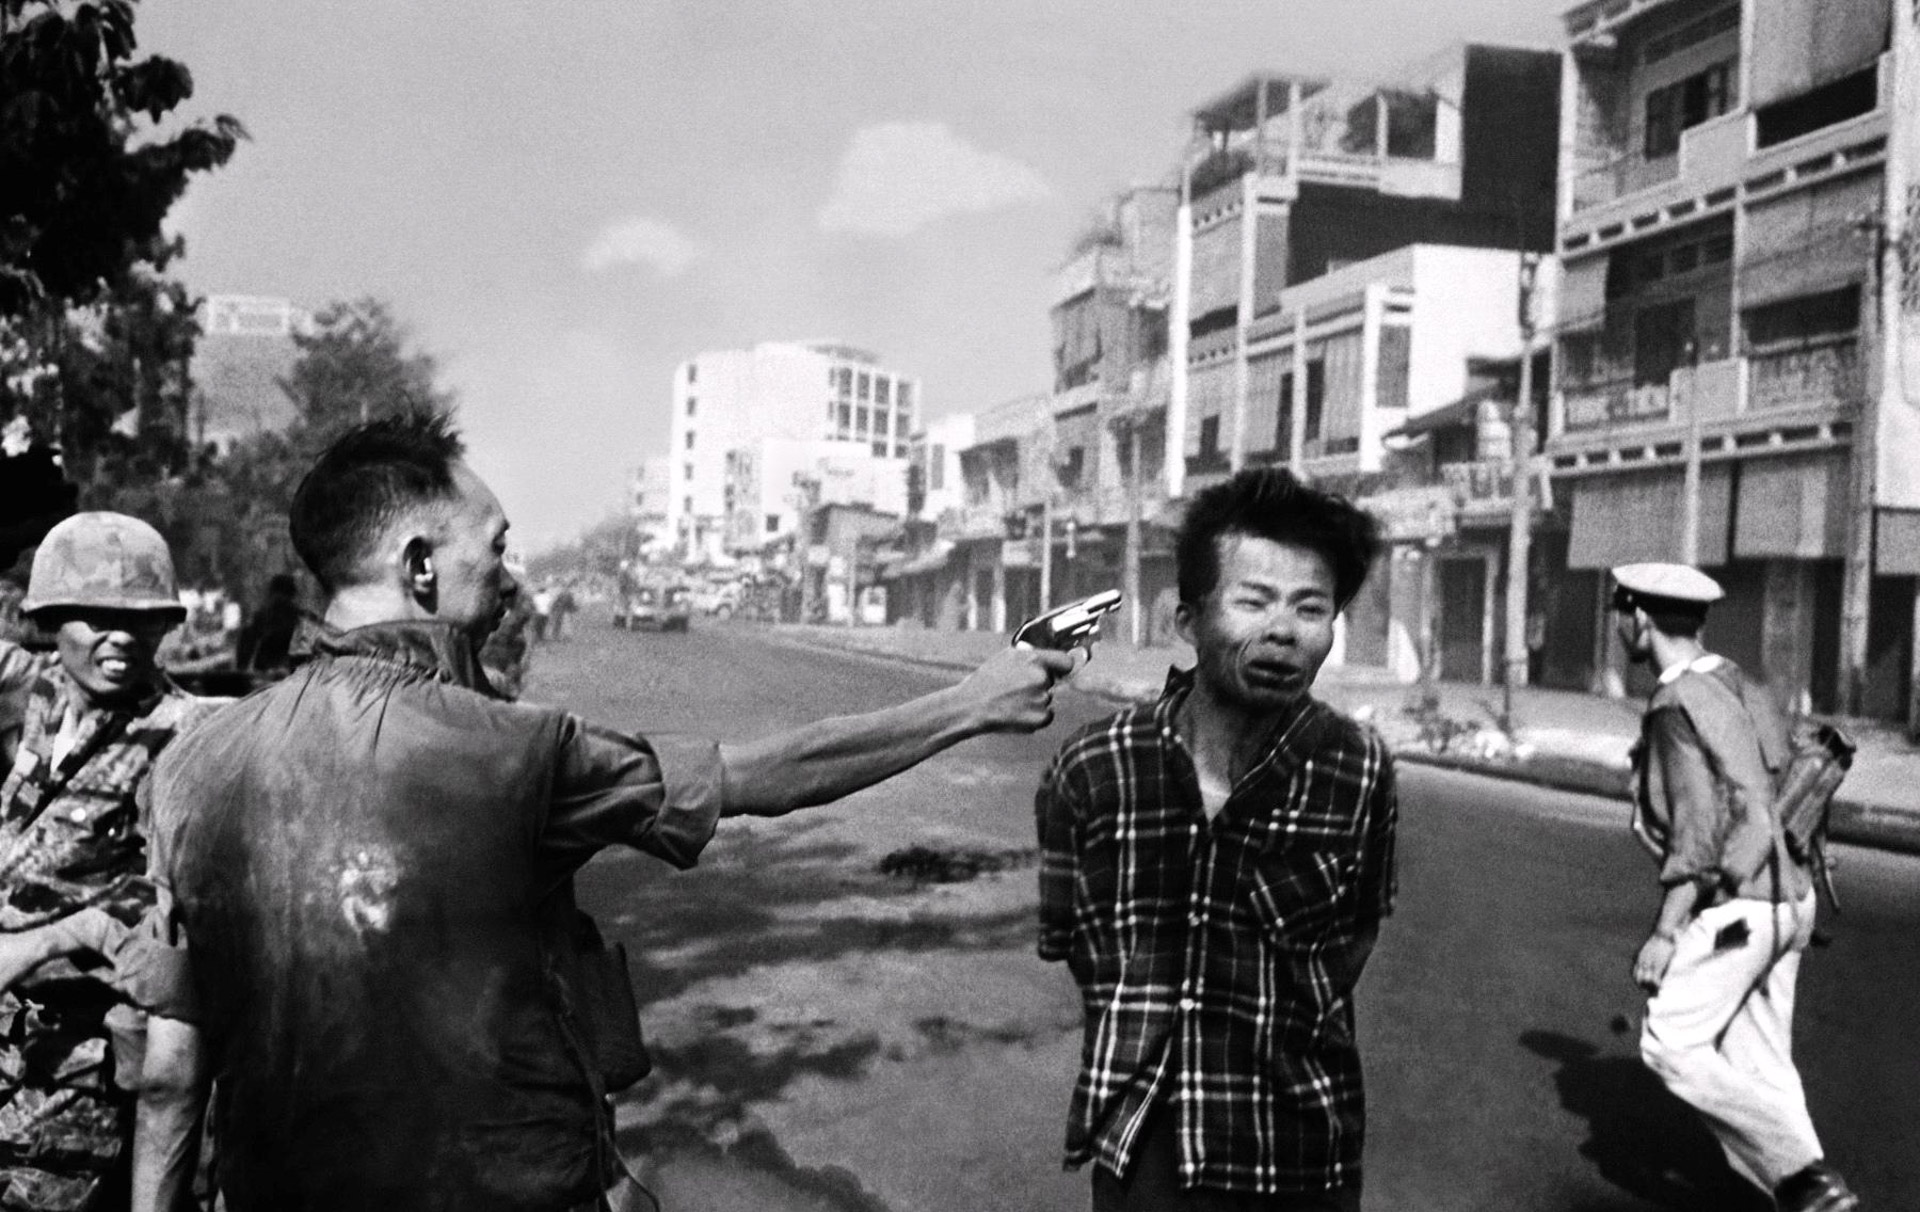 Reference Image: General Nguyen Ngoc Loan Executing a Viet Cong Prisoner in Saigon taken by photograper Eddie Adams. Romeo Alaeff, 'Smells Like Napalm,' 2007. 60 x 40 in. (152,4 x 101,6 cm.) Limited Edition Serigraph Print. Edition 10. From the series, 'War on the Brain.' This work employs famous journalistic photos as well as a movie still from 'Apocalypse Now' to invoke impressions of Vietnam as seen through the media, which was responsible in part for changing public opinion about the war.